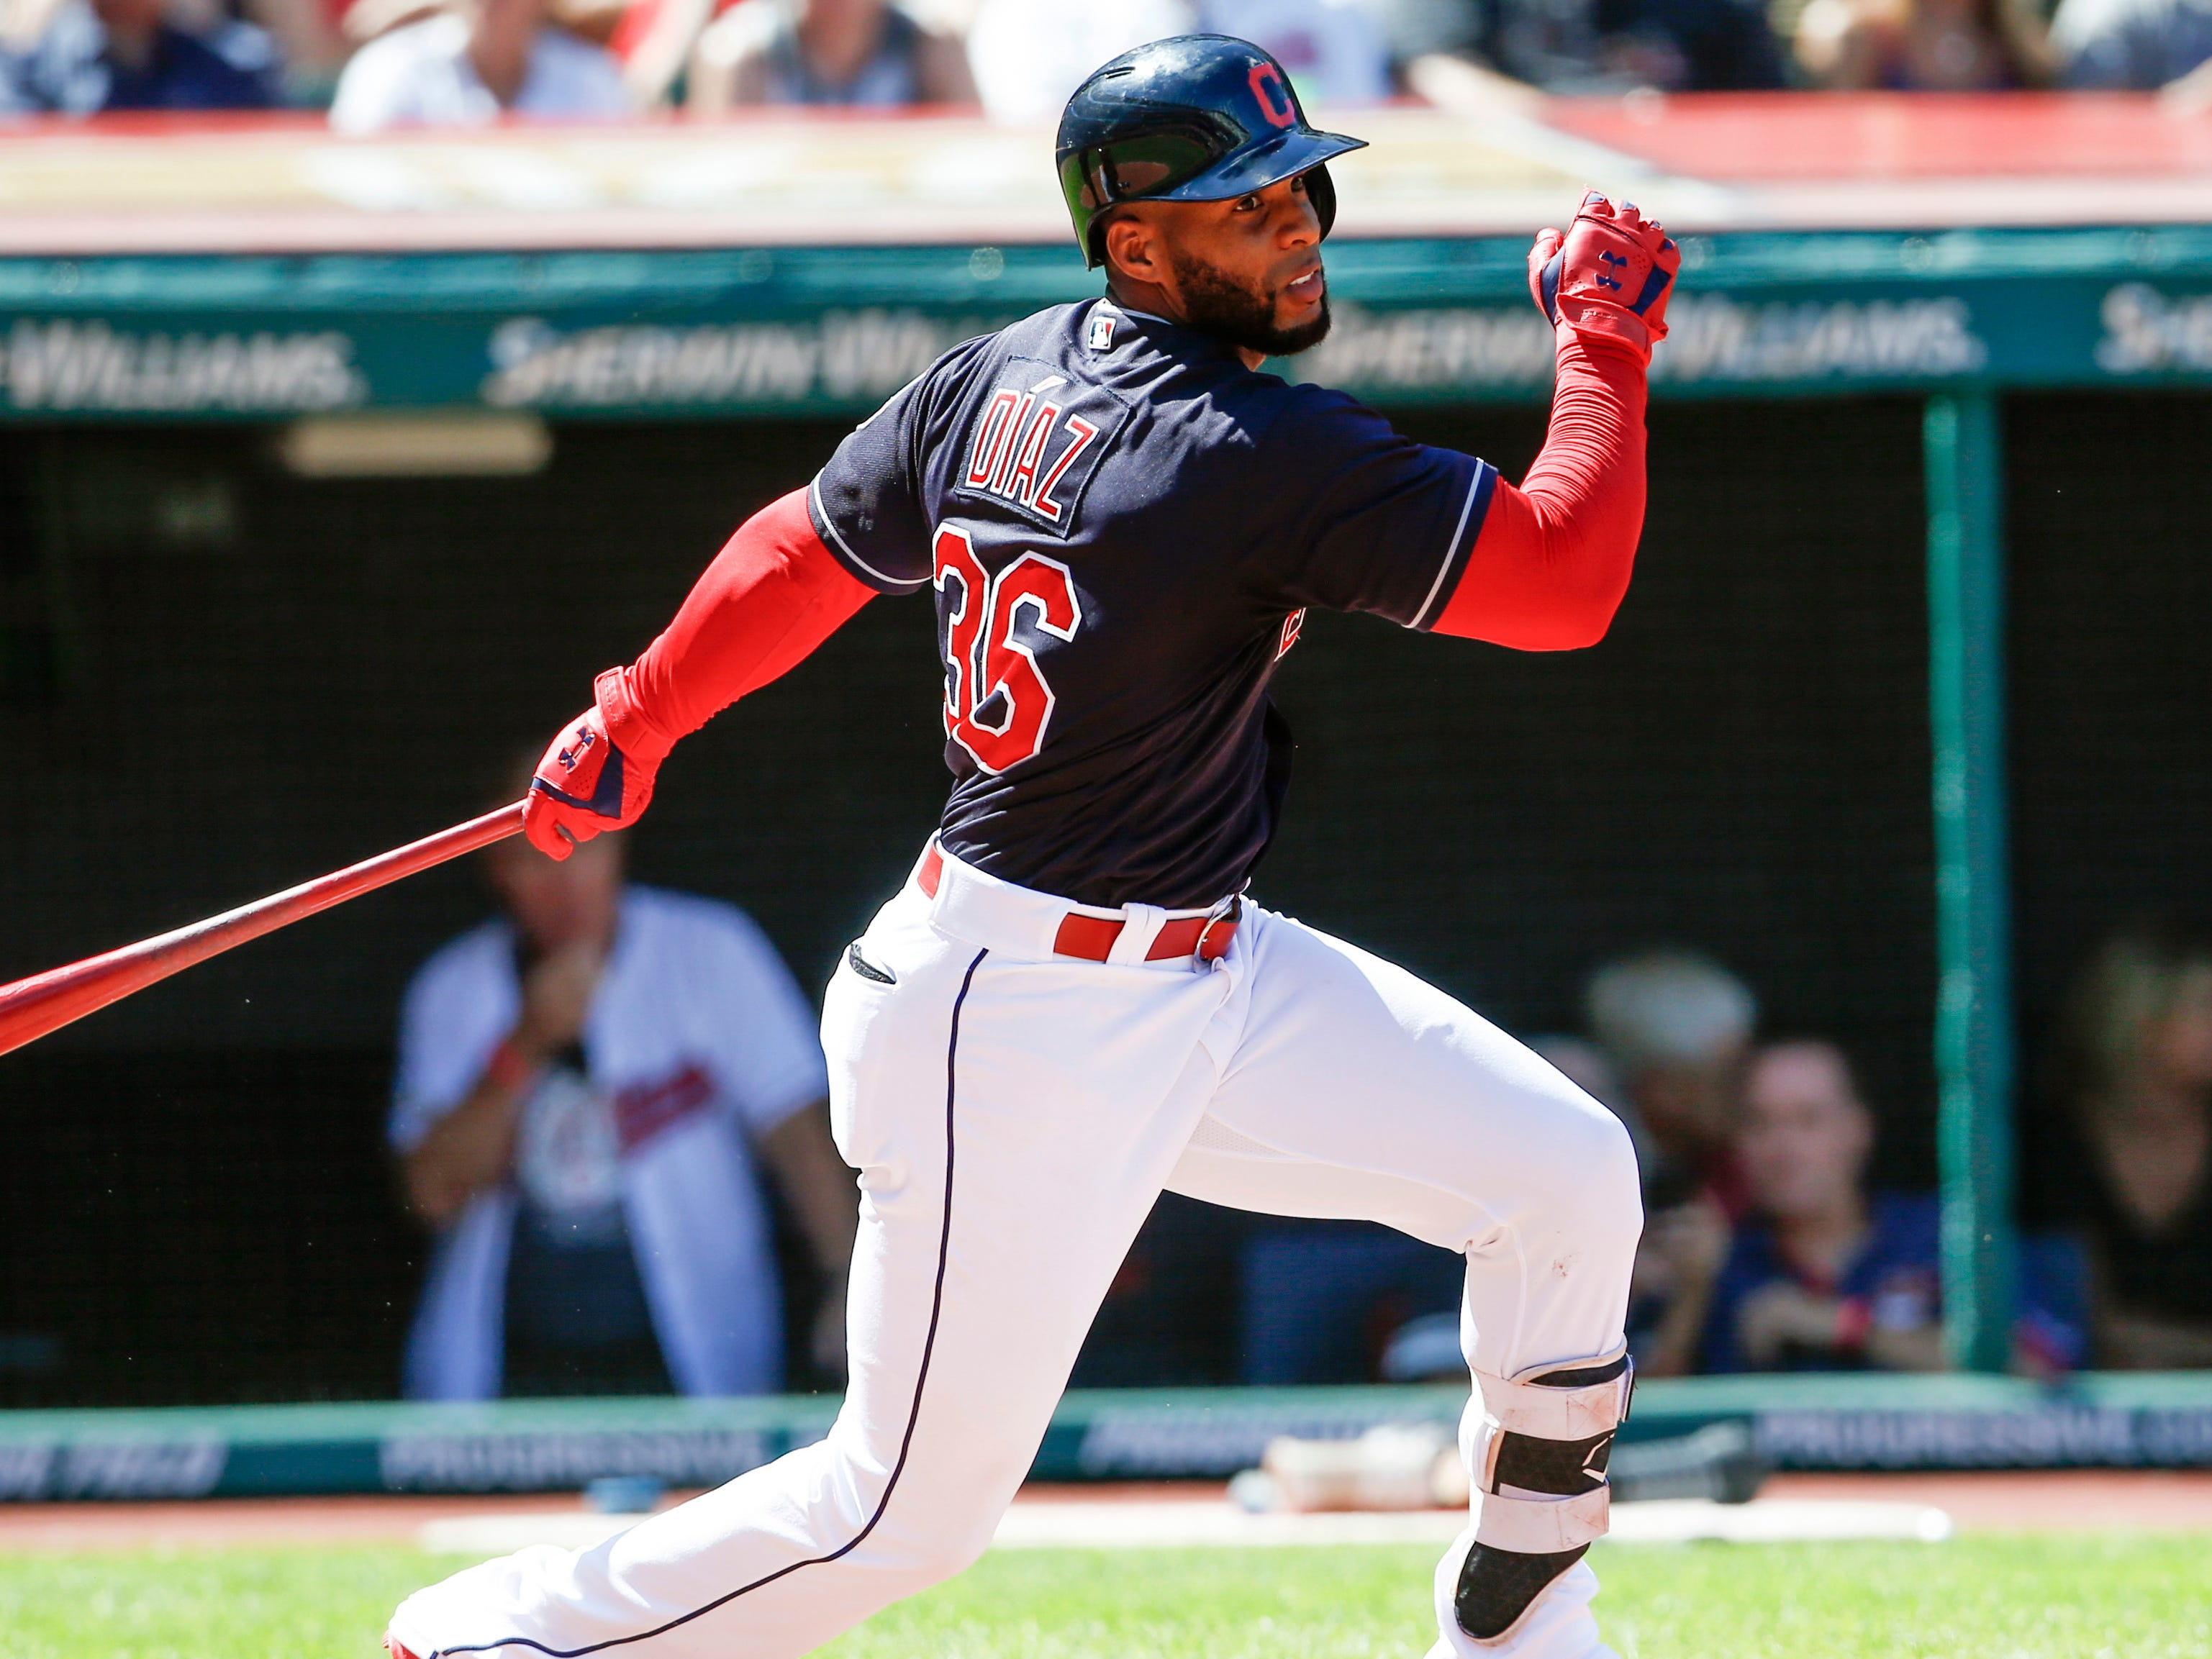 Cleveland Indians' Yandy Diaz hits a double off Detroit Tigers starting pitcher Francisco Liriano during the fourth inning.